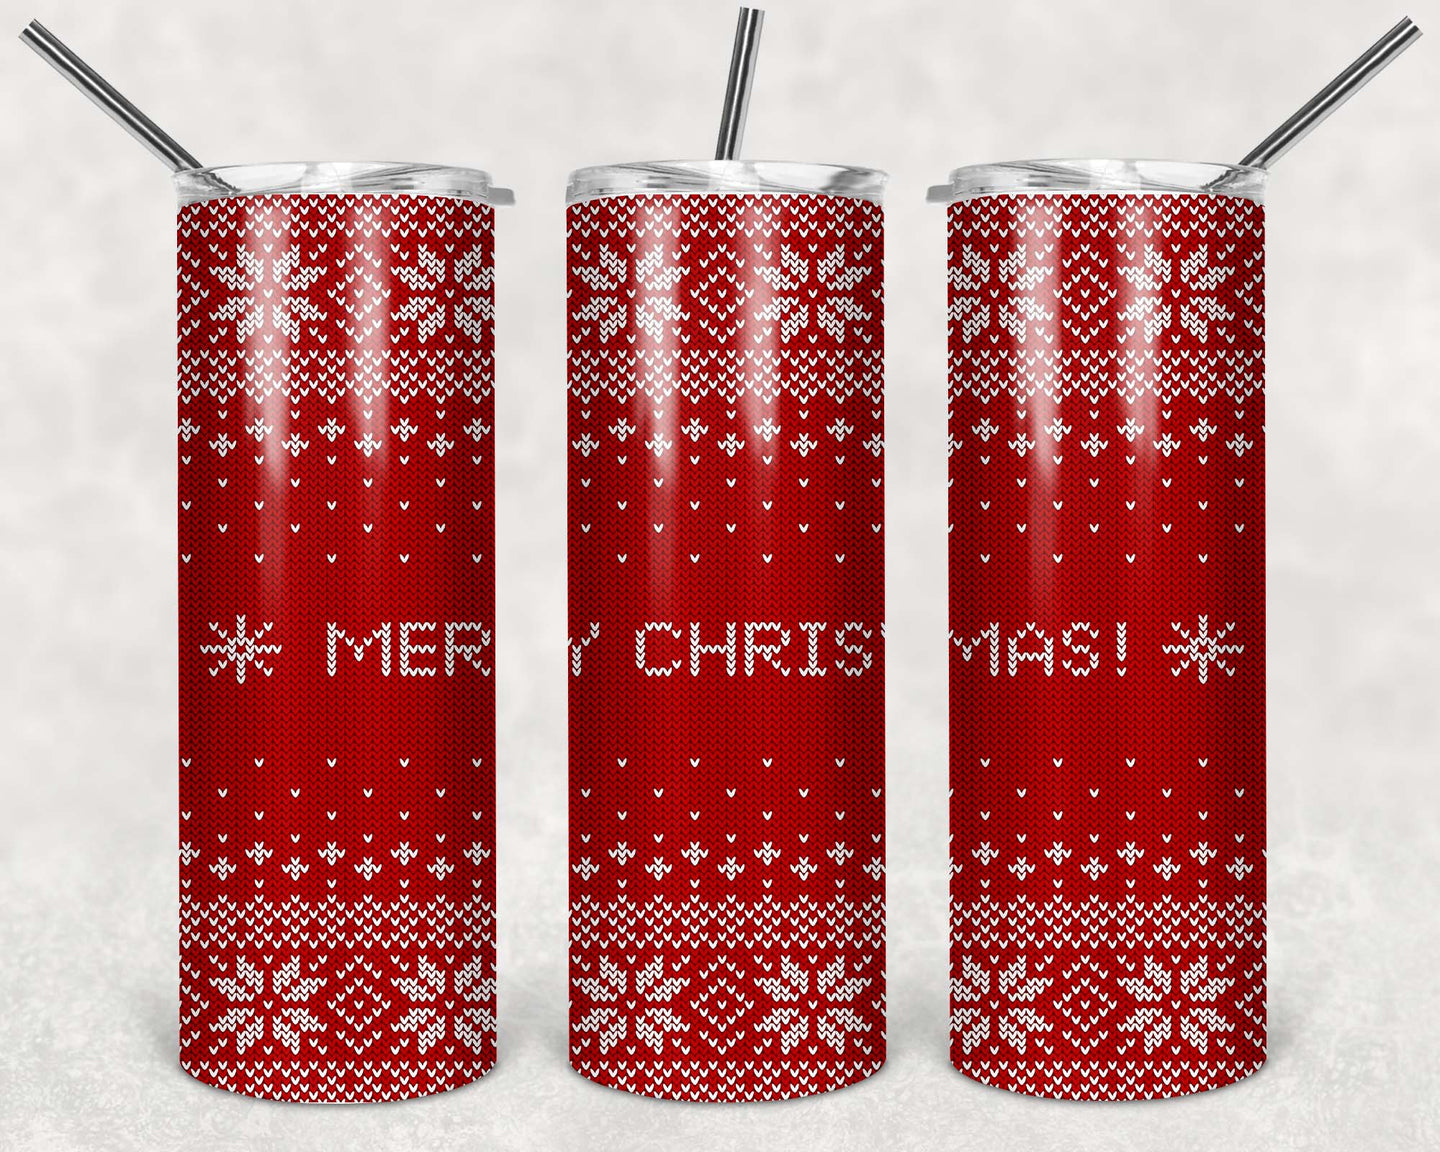 20oz Tumbler - Merry Christmas Knitted Pattern | Blue Hippo Metal Art